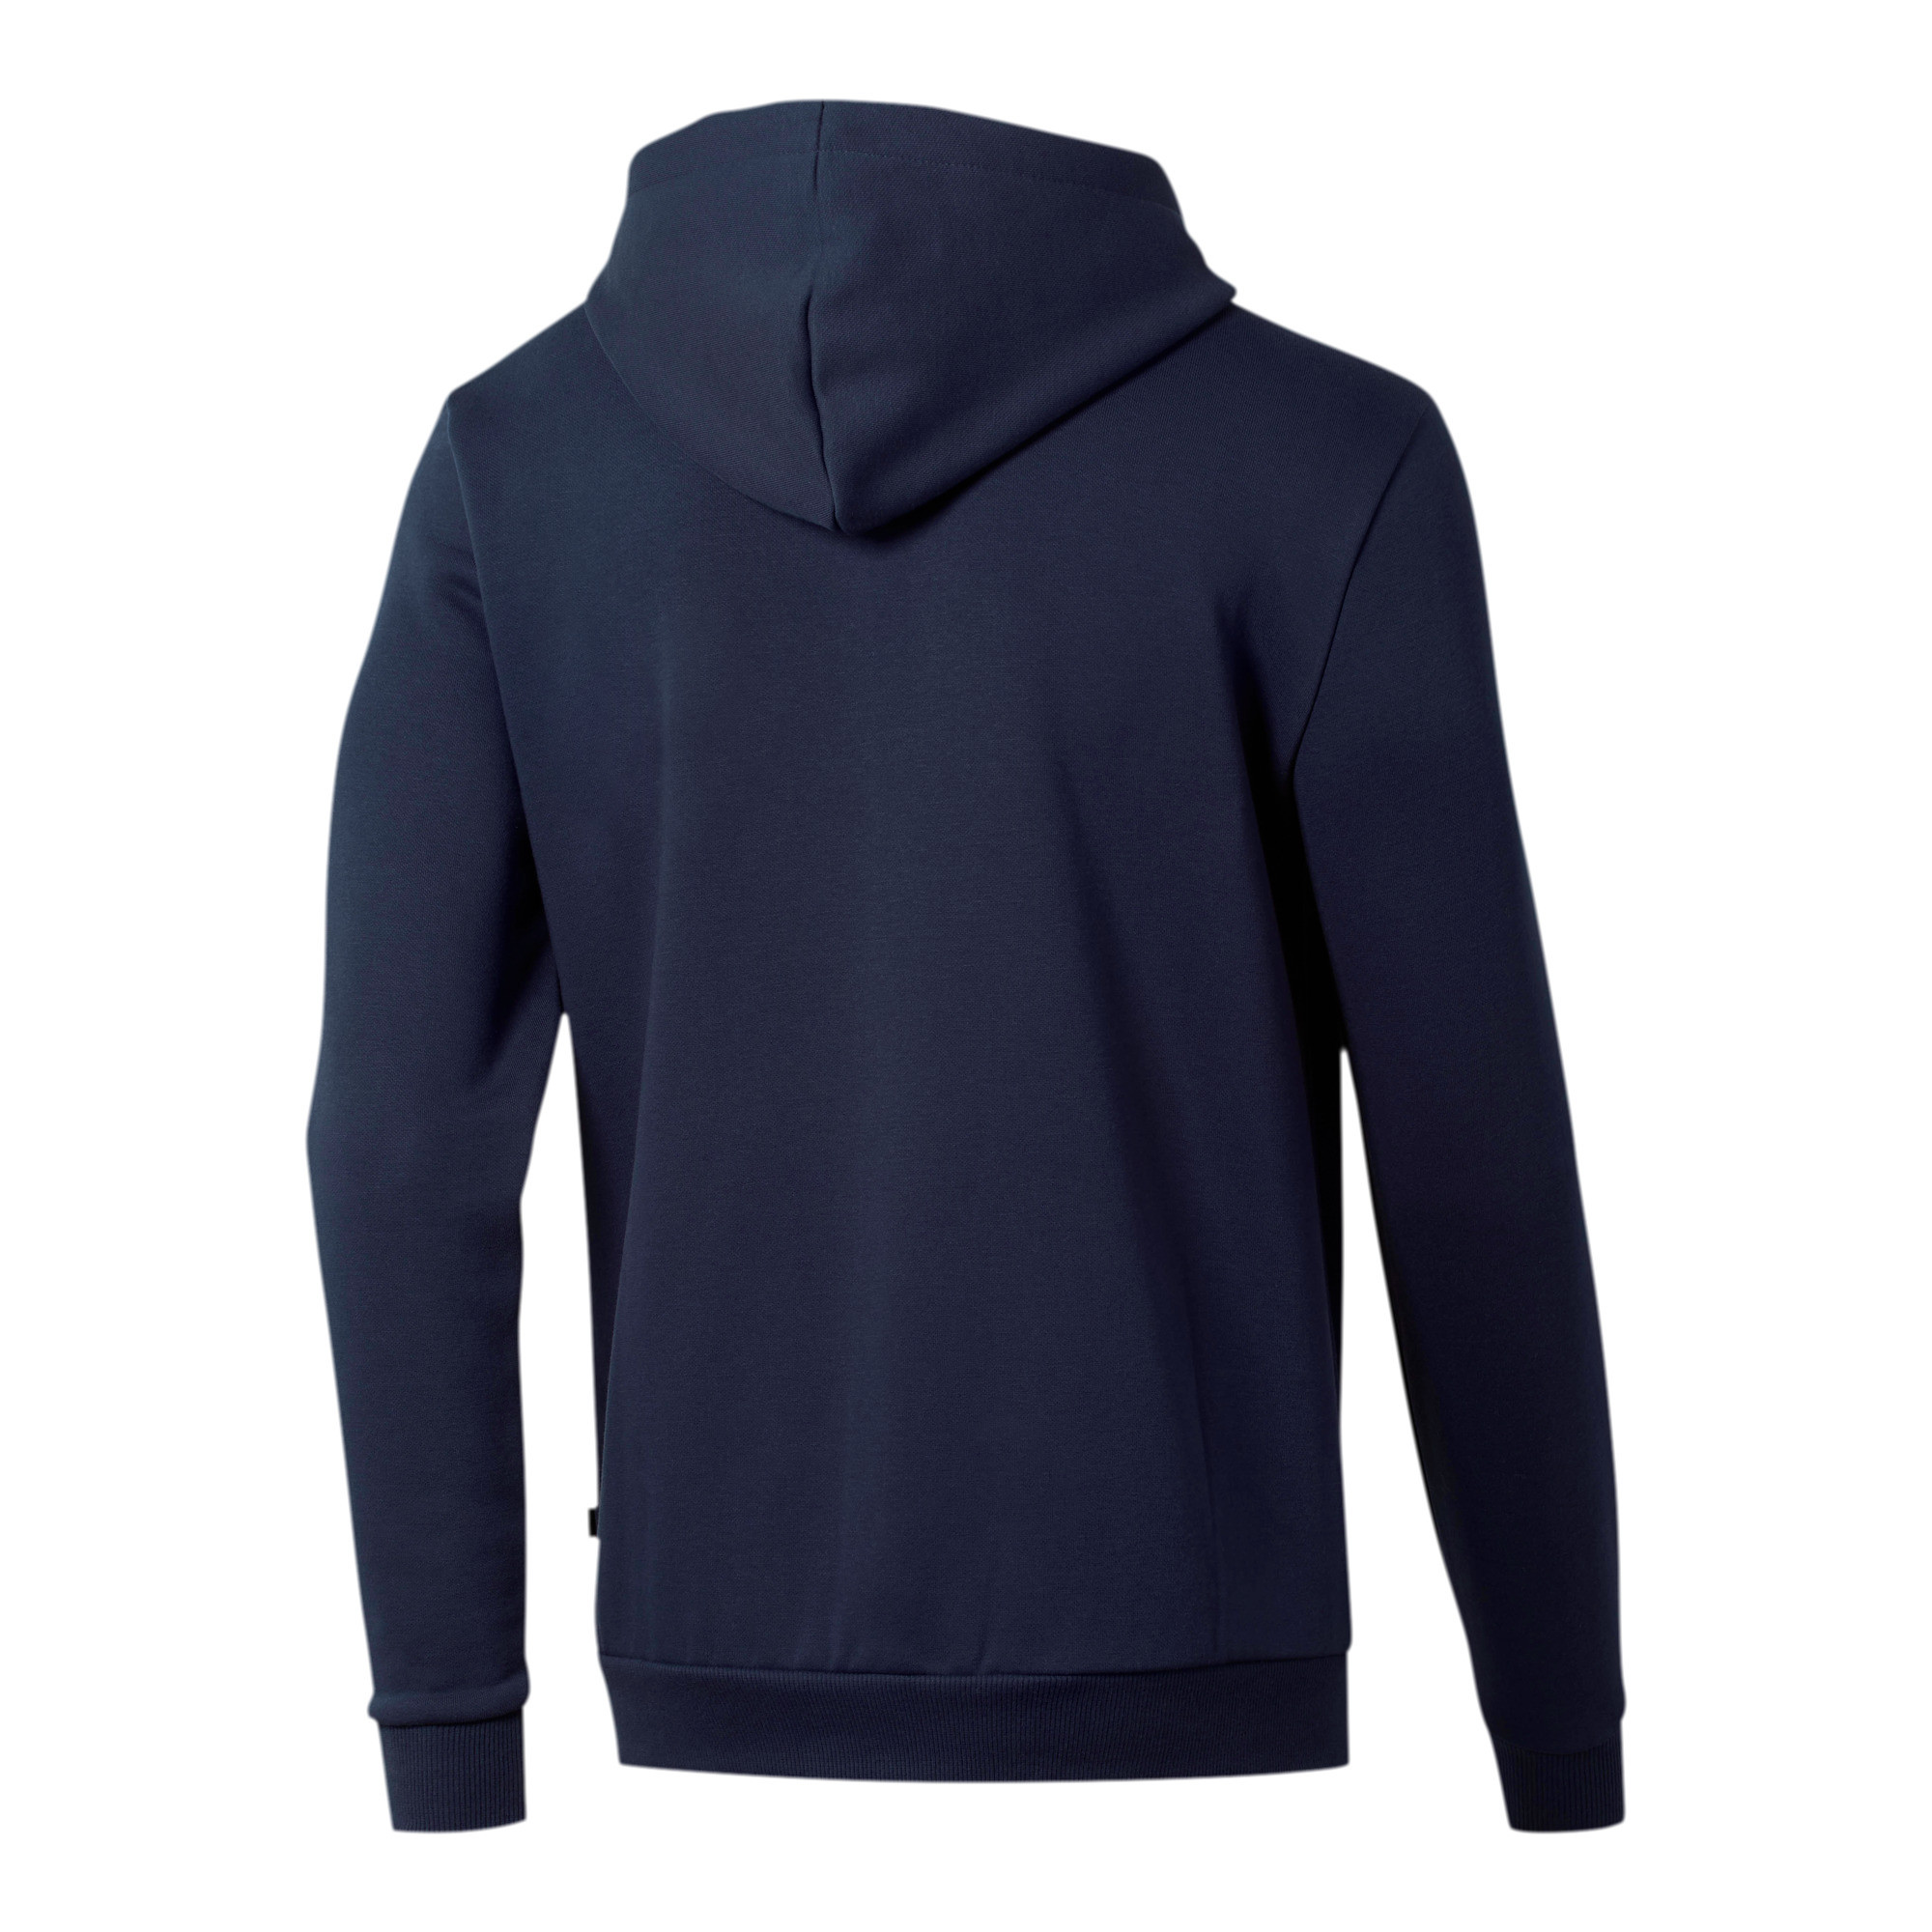 PUMA-Essentials-Men-039-s-Hooded-Fleece-Jacket-Men-Sweat-Basics thumbnail 13